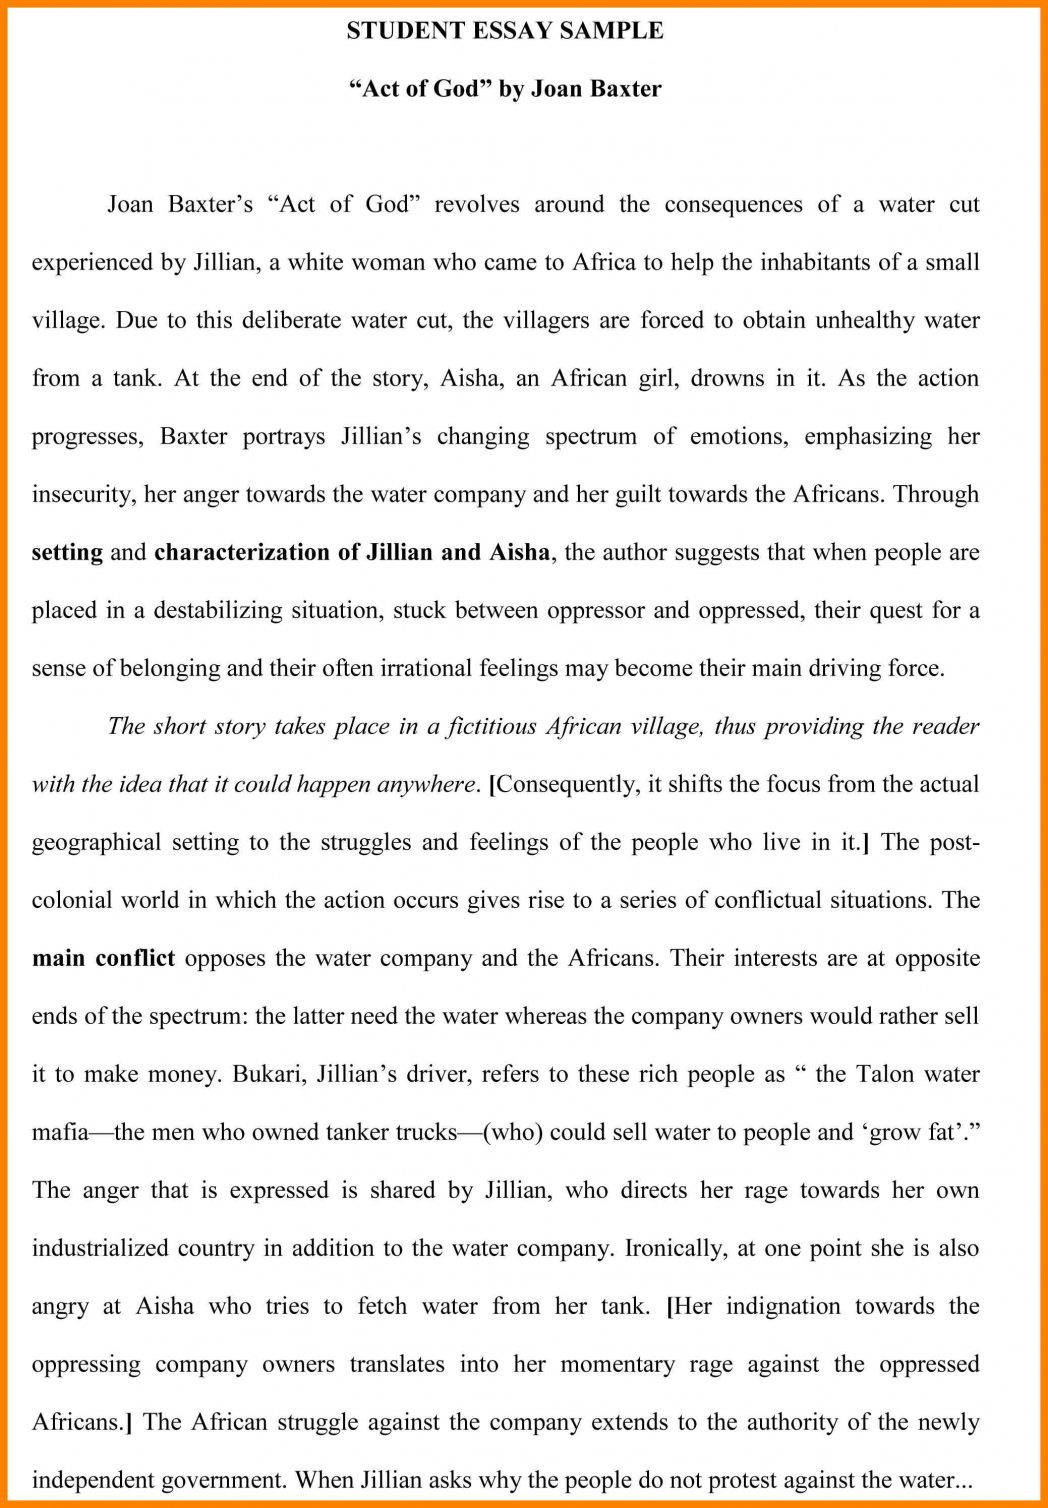 003 Essay Example Examples Of Process Essays Pdf How To Write Good Student Better Download Descriptive Great Law Steve Foster Lauren Starkey 1048x1508 Stirring Montaigne Deutsch English Penguin Full